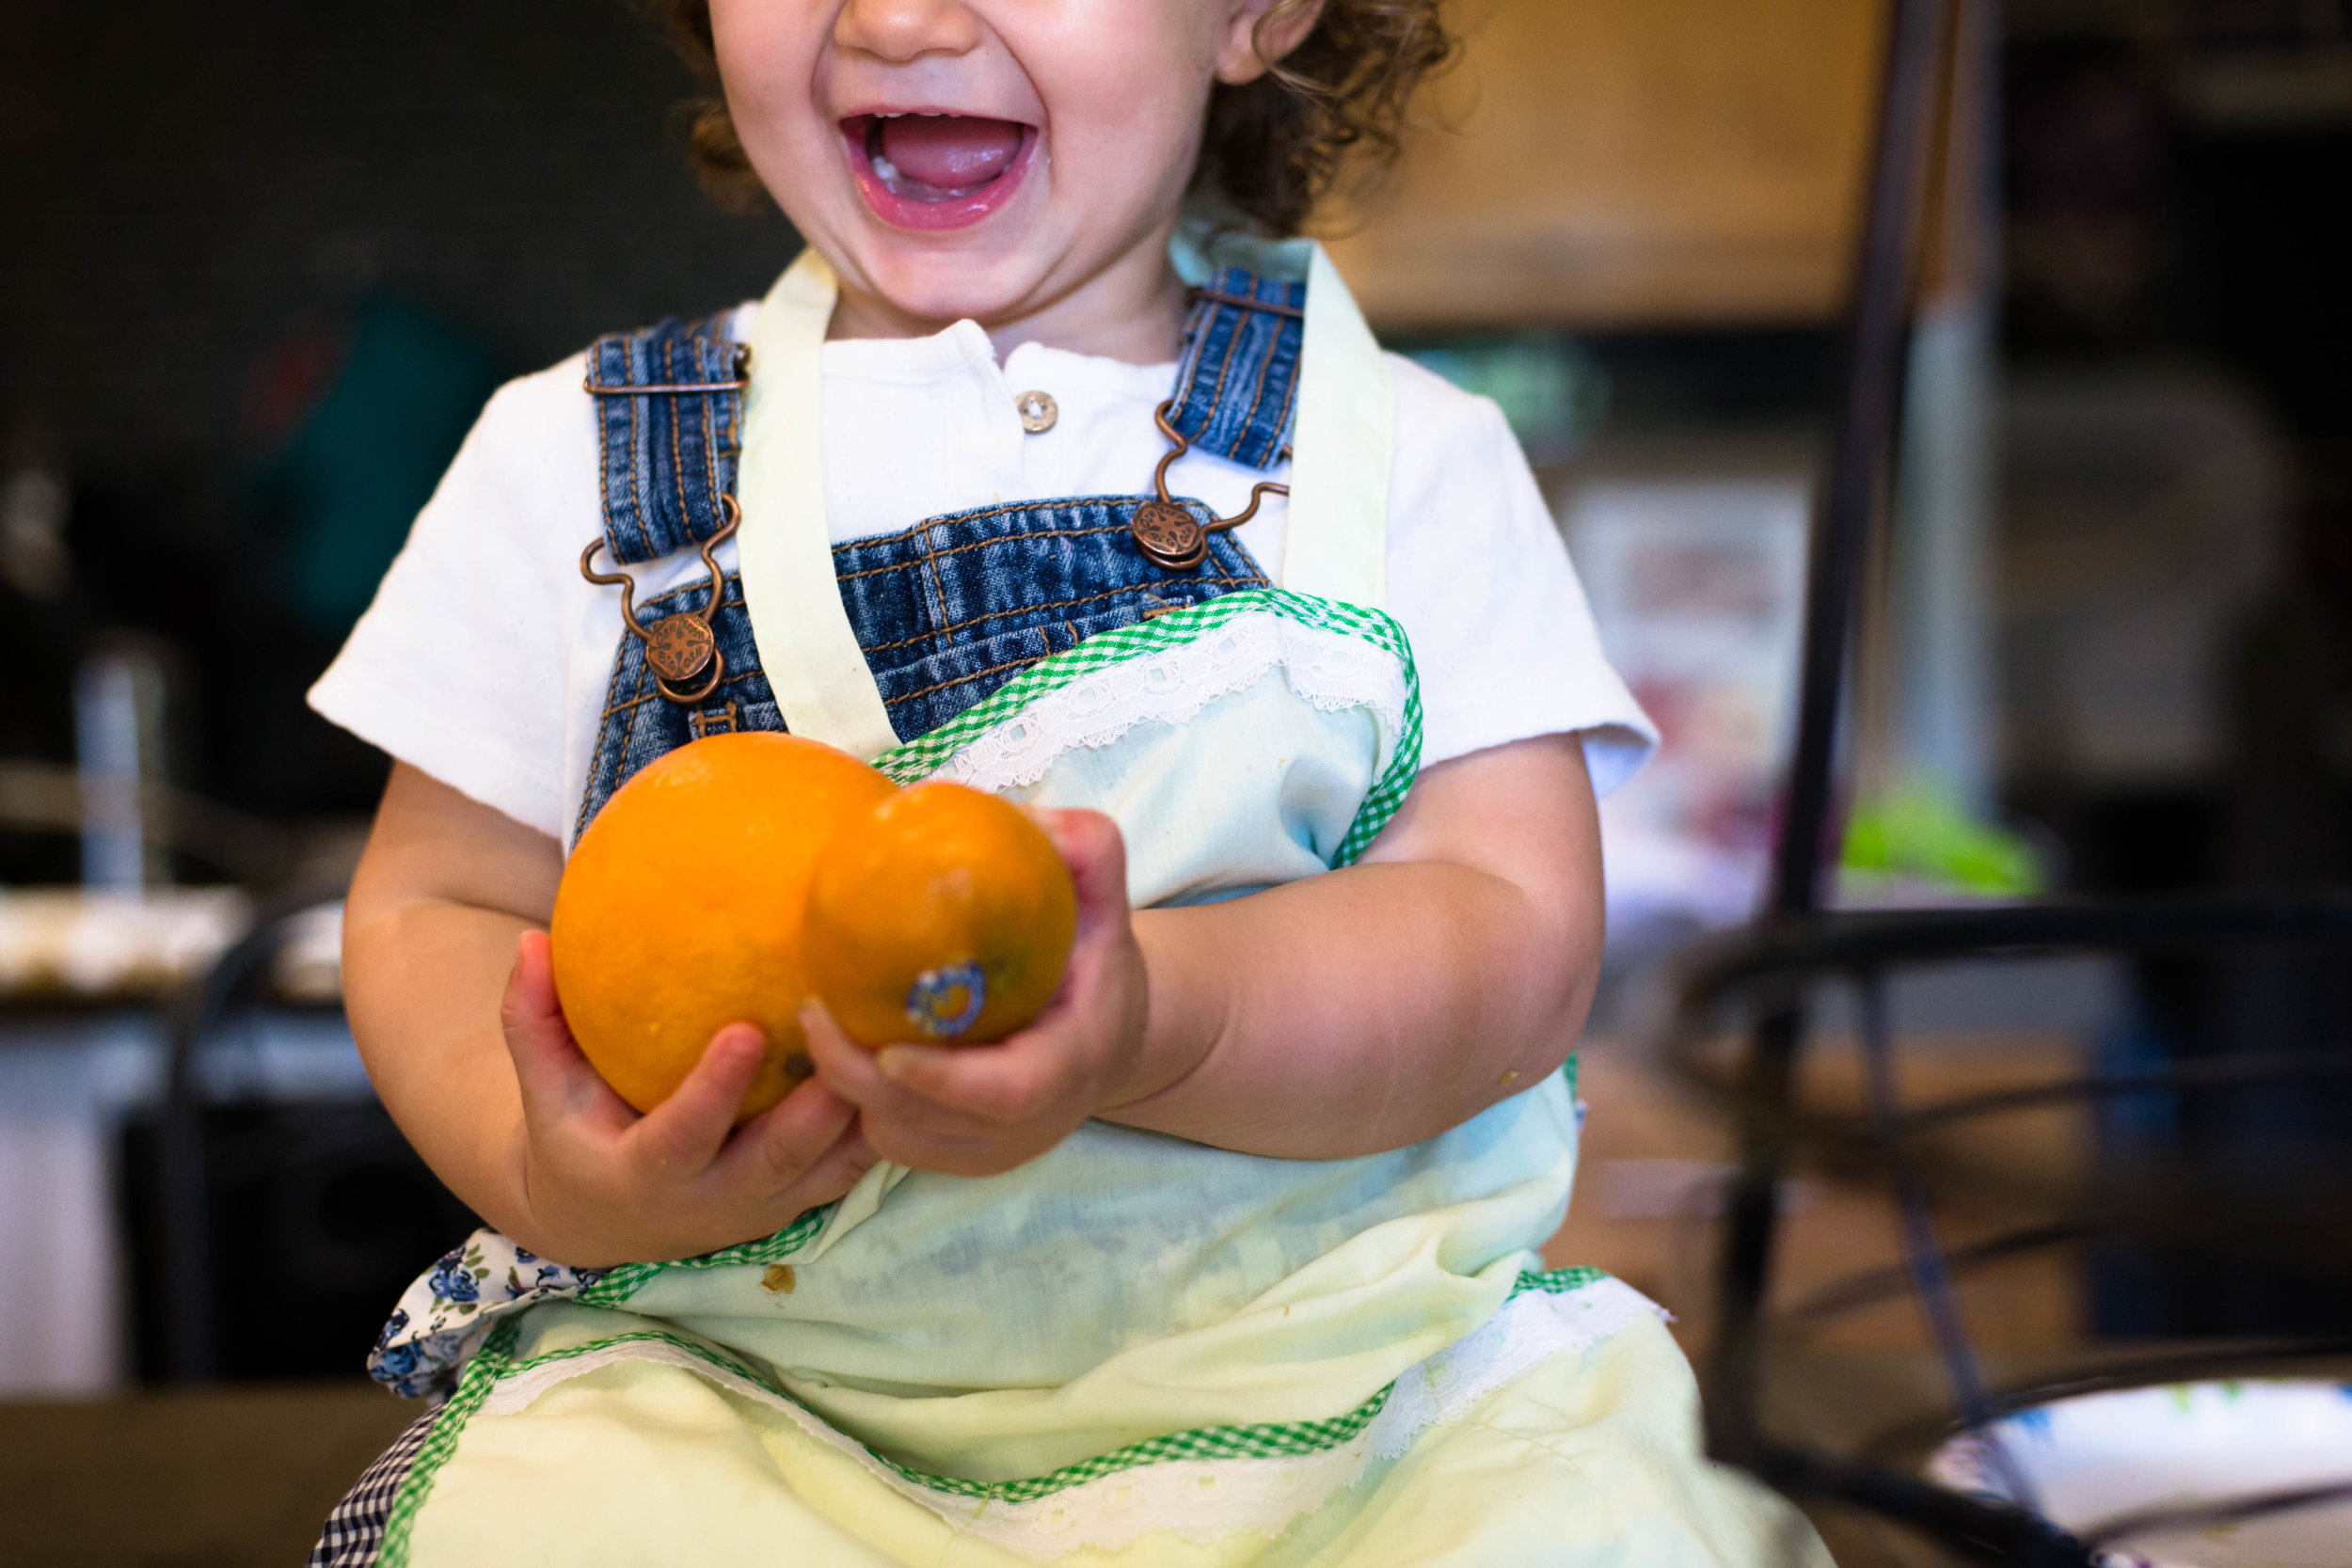 Little girl laughing holding oranges on the counter in her home